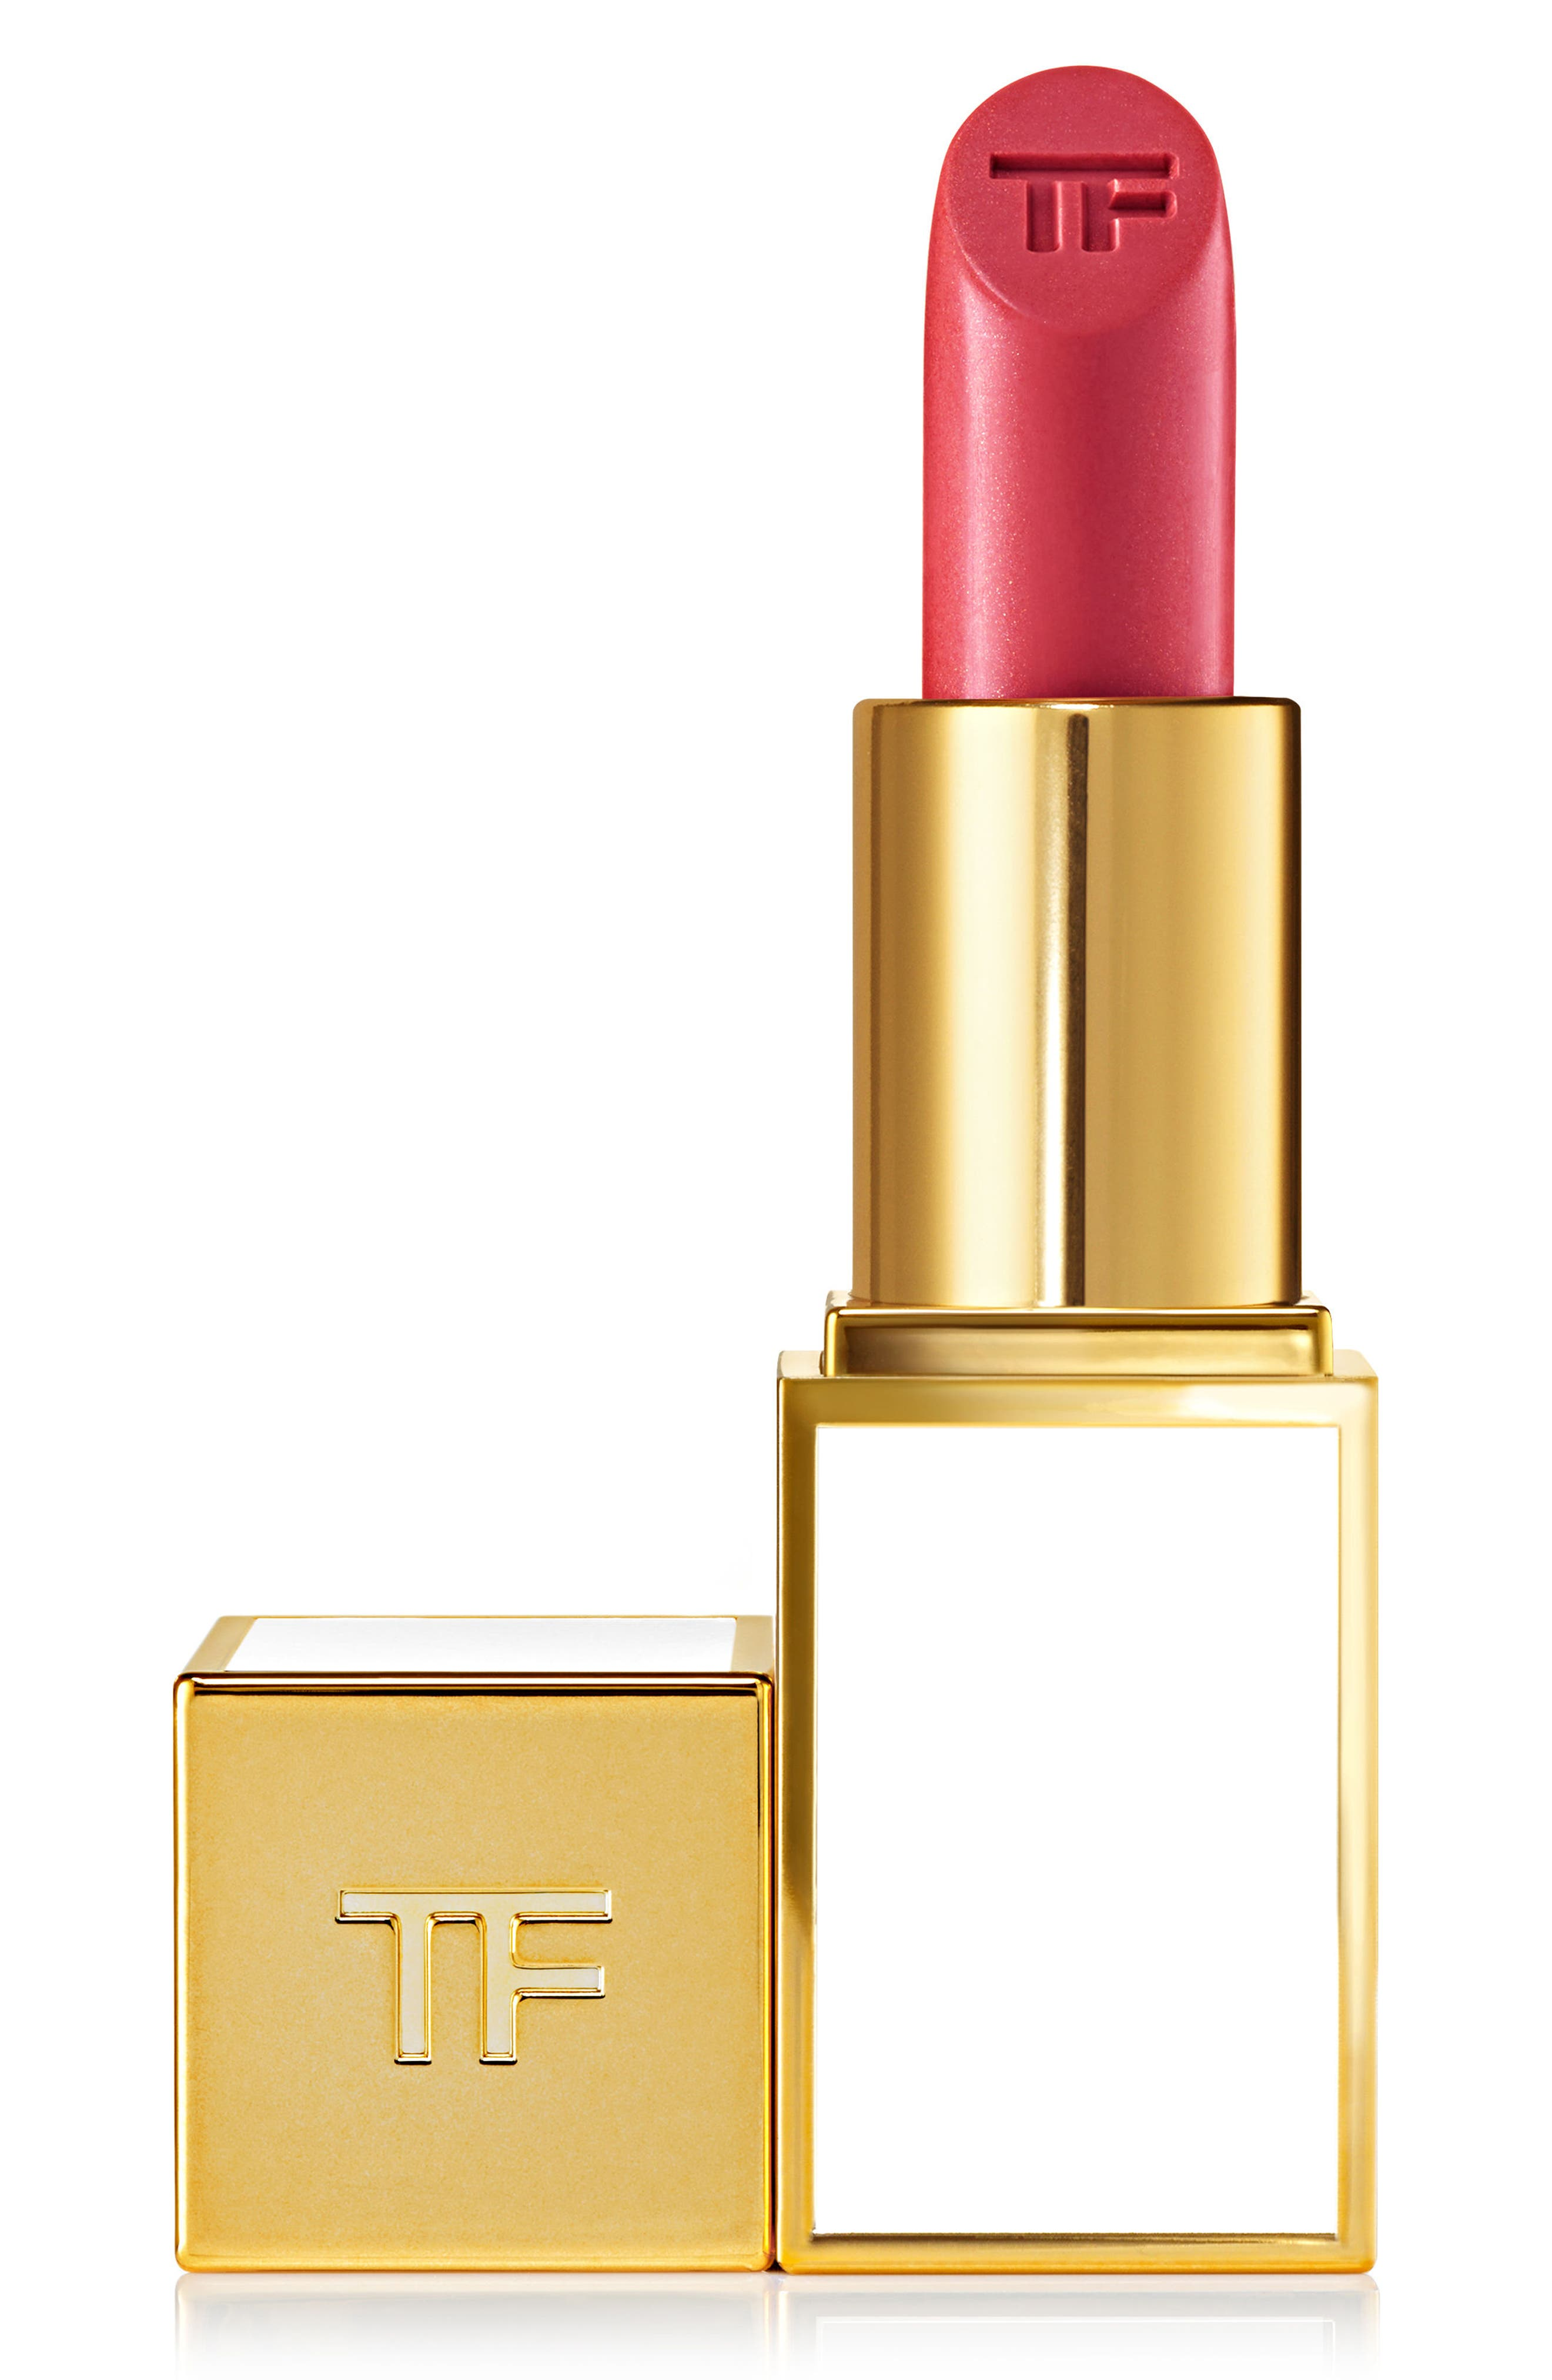 Alternate Image 1 Selected - Tom Ford Boys & Girls Lip Color - The Girls (Limited Edition)